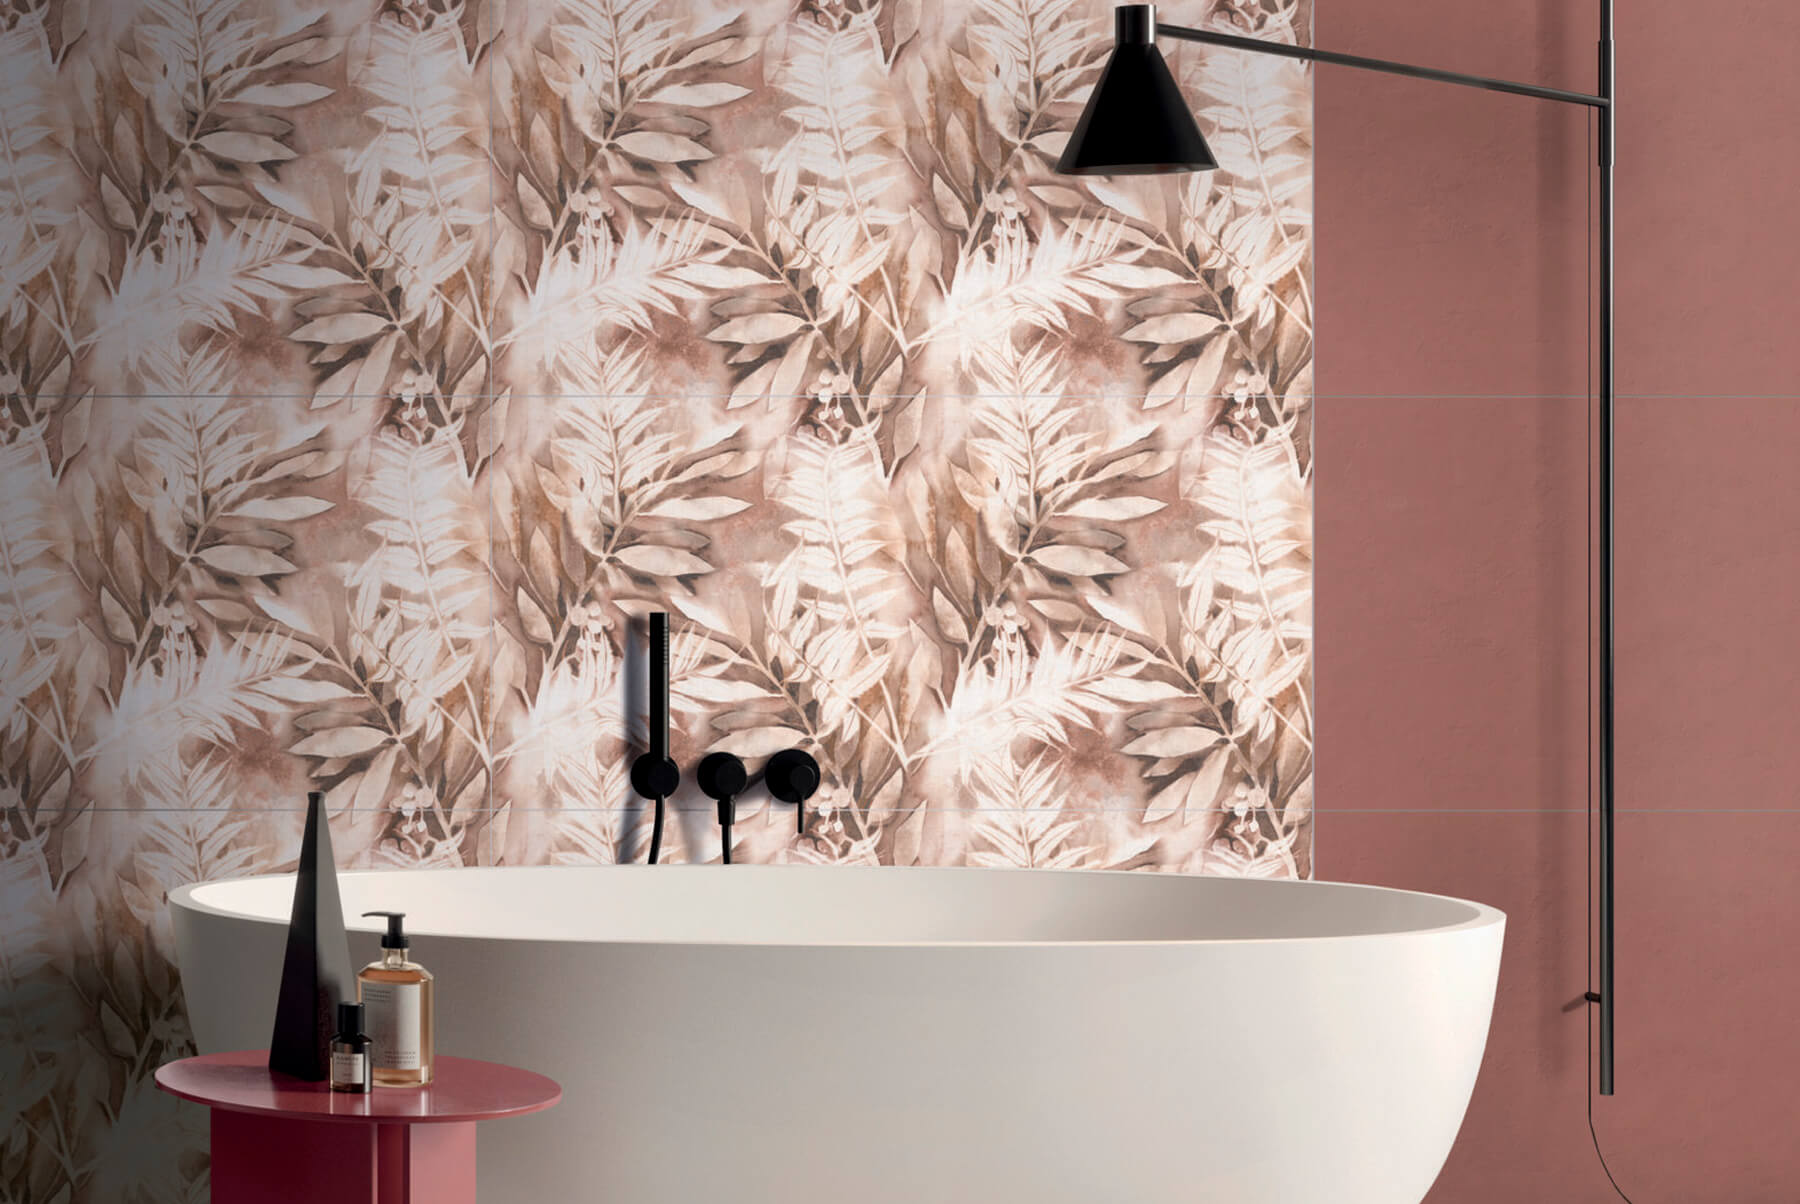 TILES-WIDE-&-STYLE-MINI-INSET-3-1800x1204